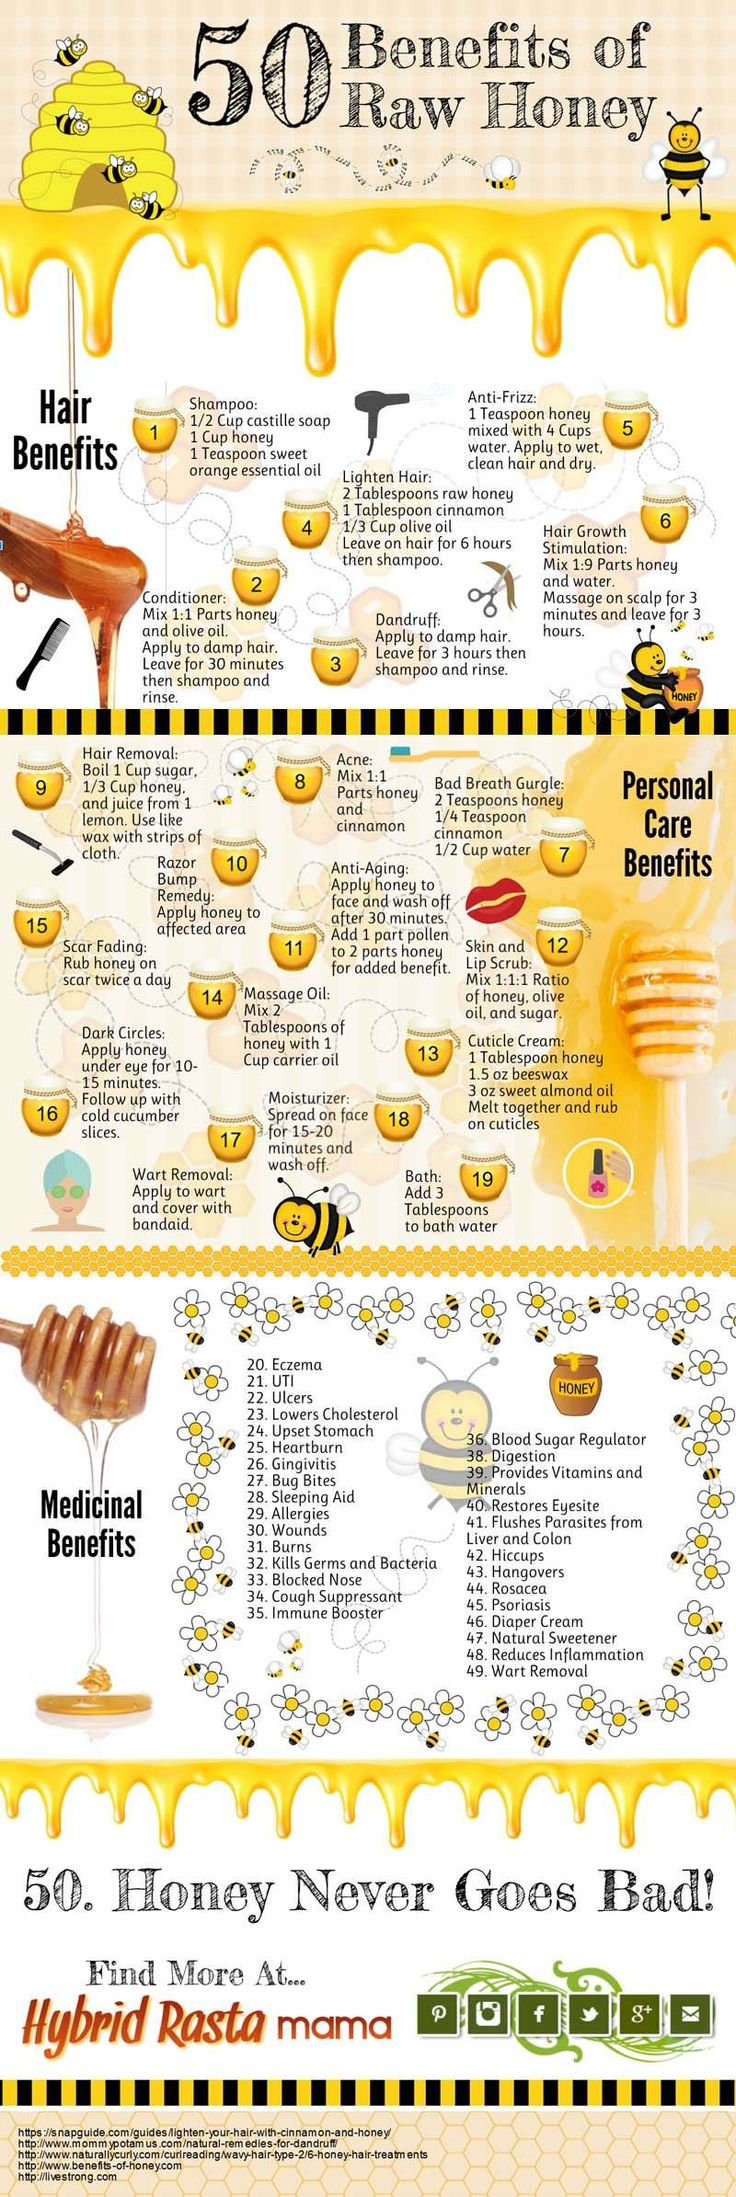 50-benefits-of-raw-honey_55f1cdc89a2dd